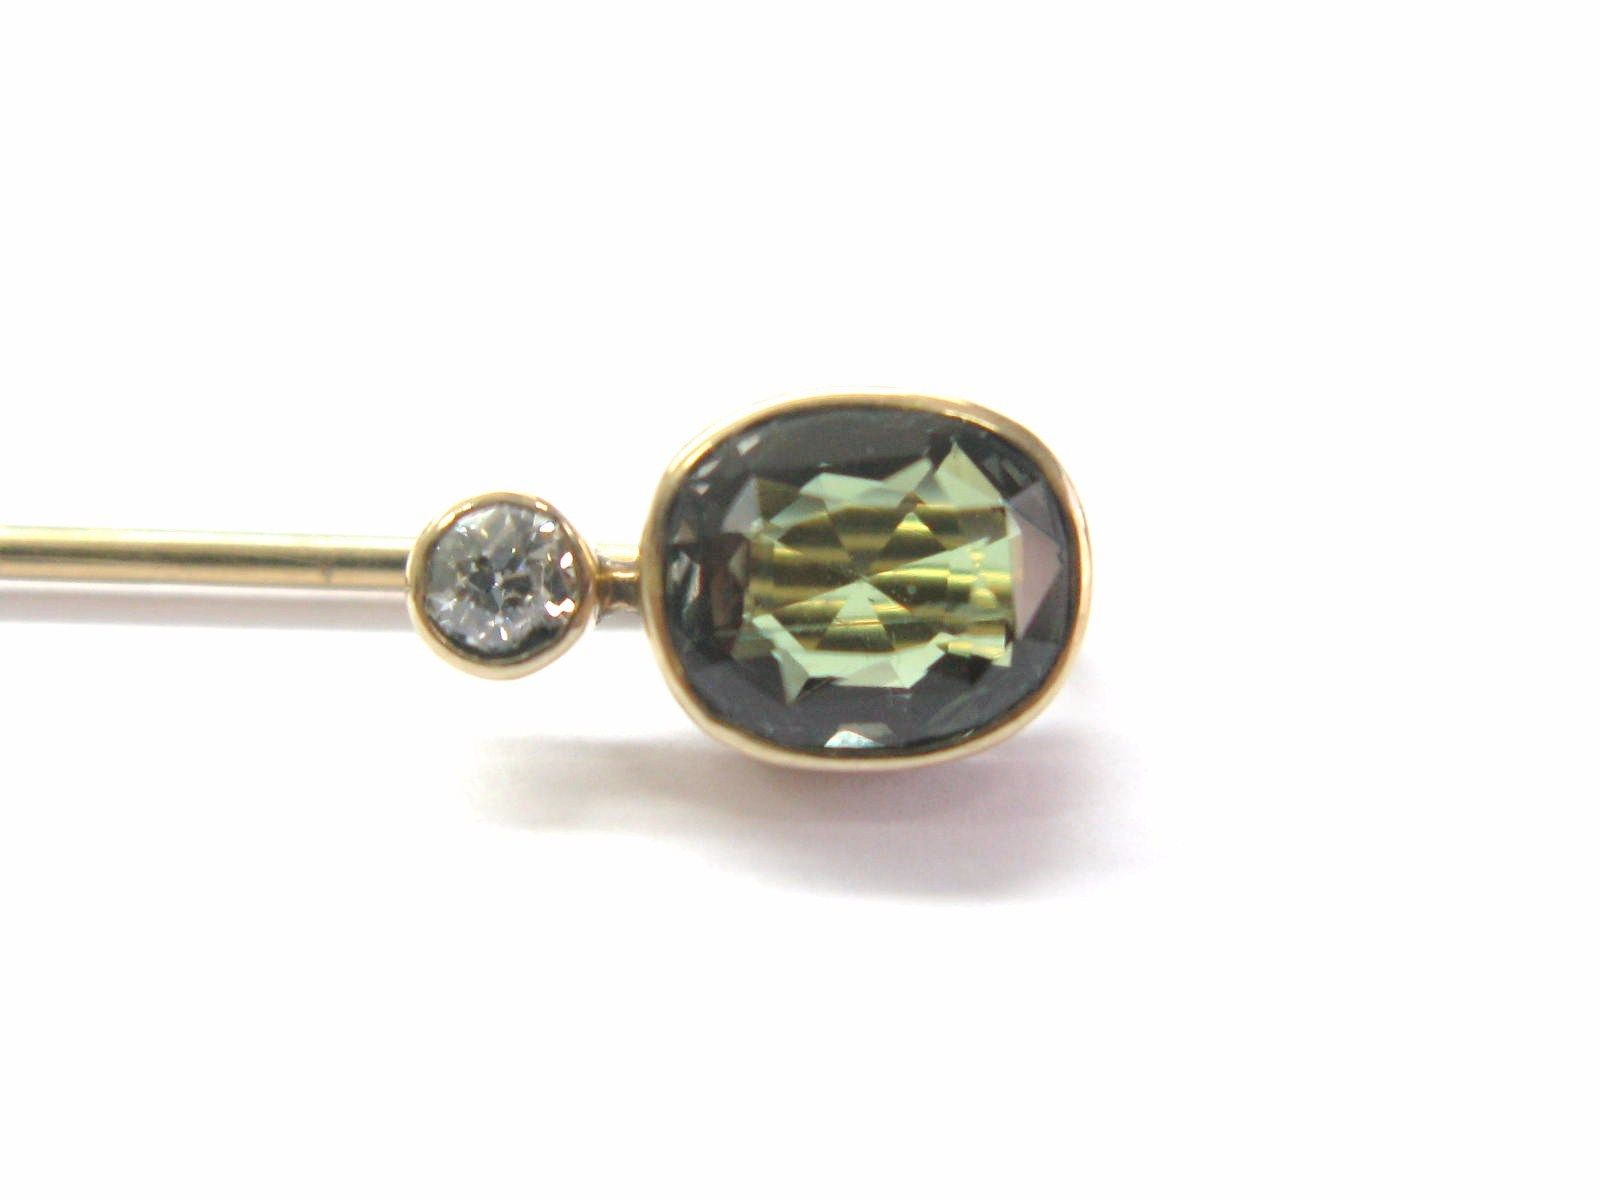 Vintage Old European Diamond Changing Color Sapphire Pin Brooch Yellow Gold 14KT by